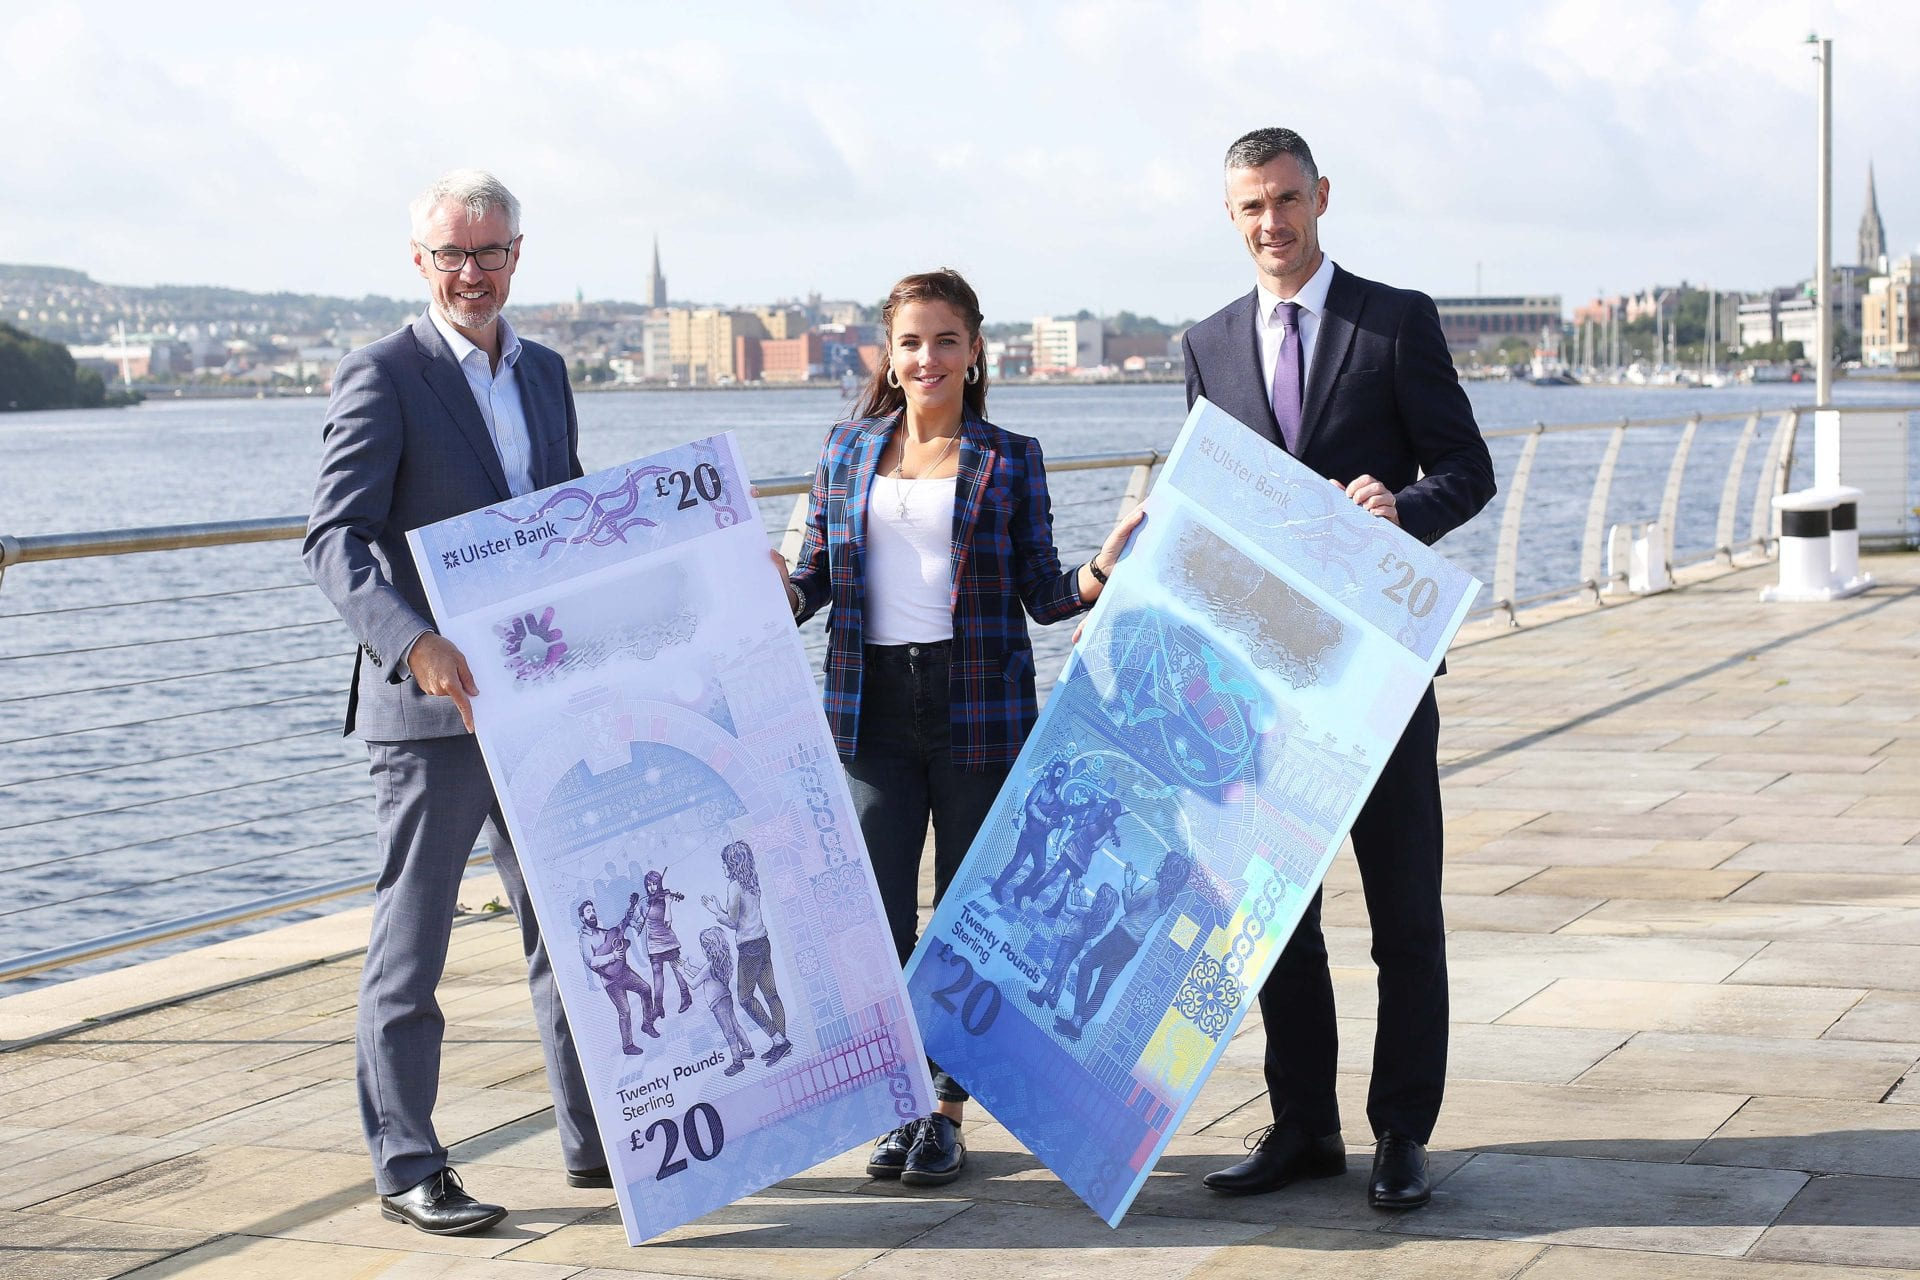 Ulster Bank has revealed £20